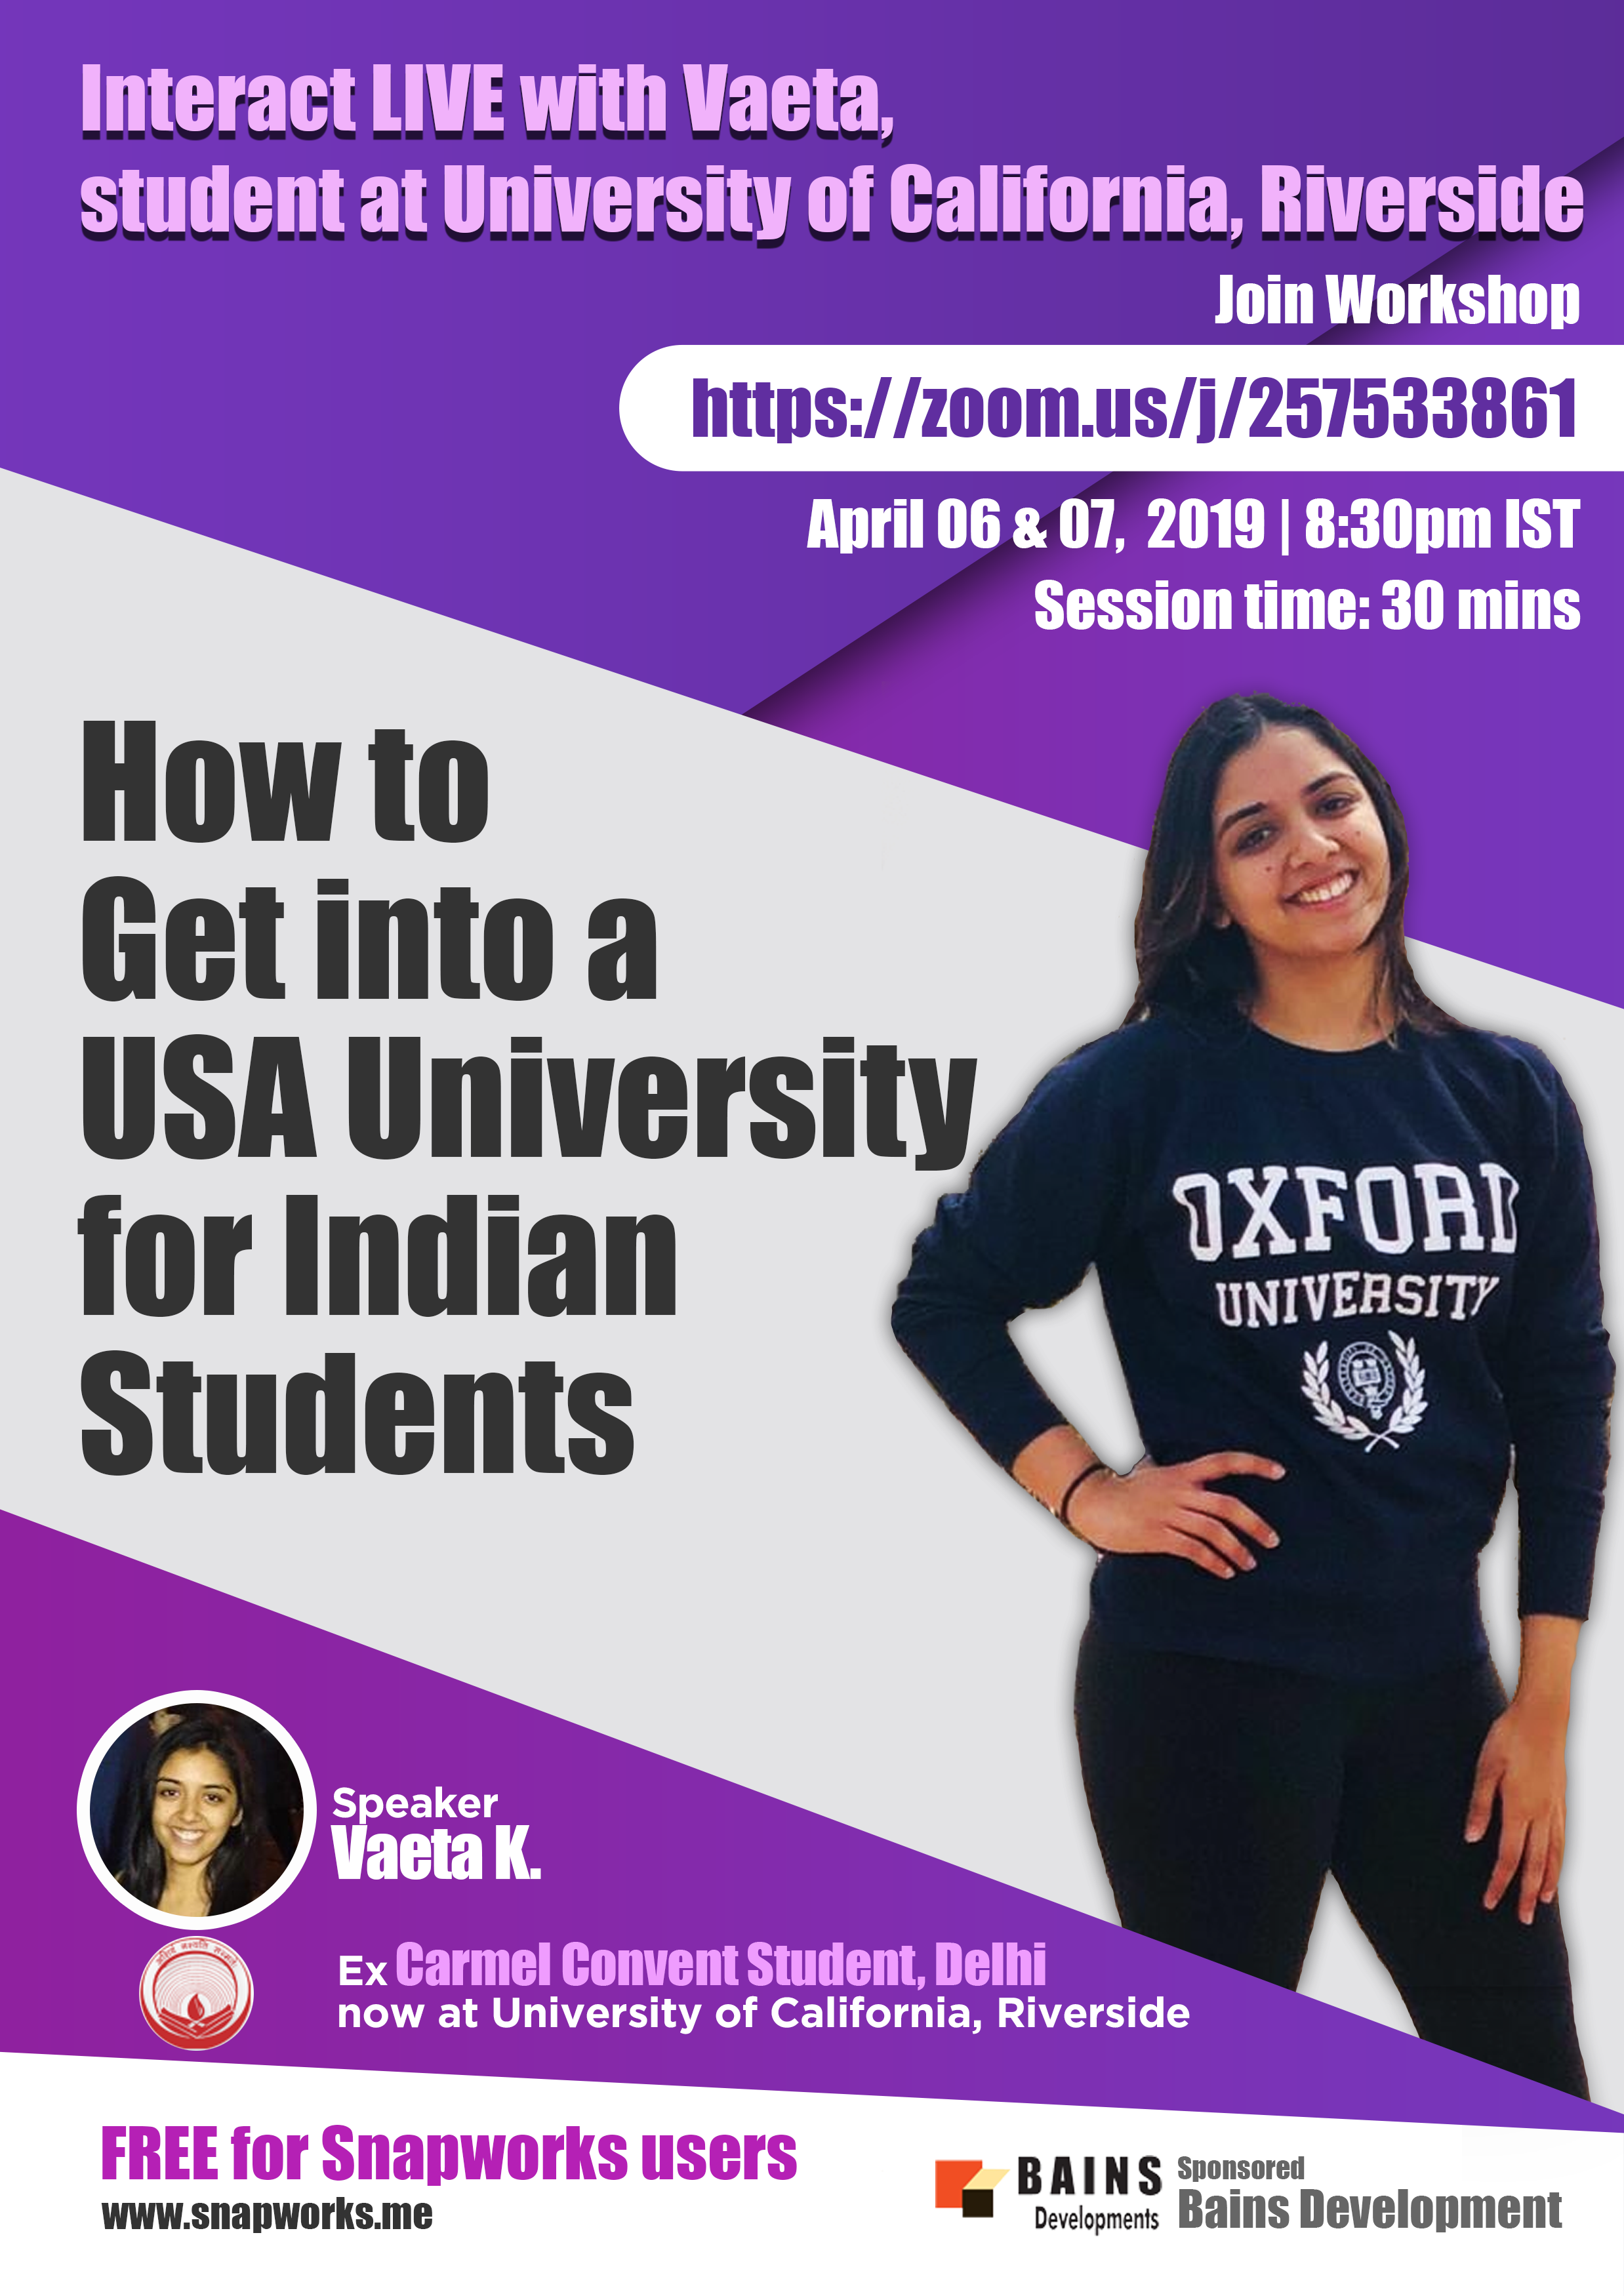 How to get into a USA University for Indian Students. Join